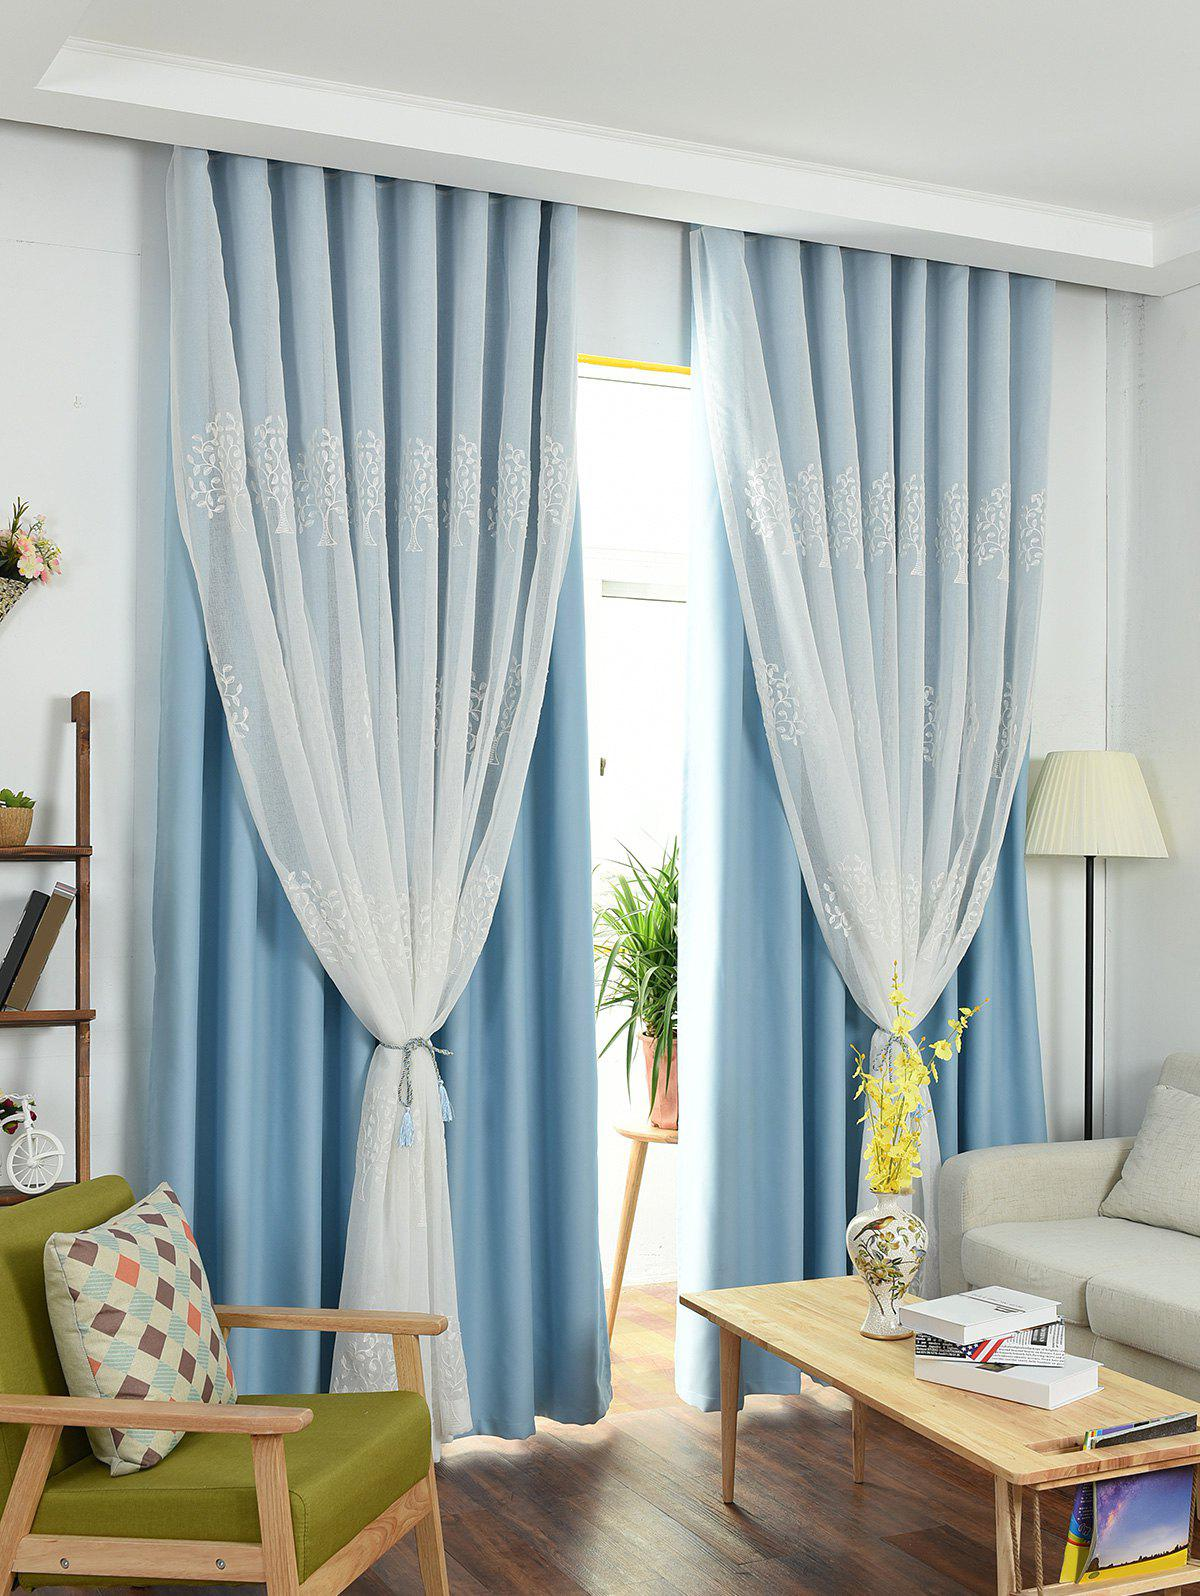 Online Window Screen 1Pcs 2 Layers Princess Curtain